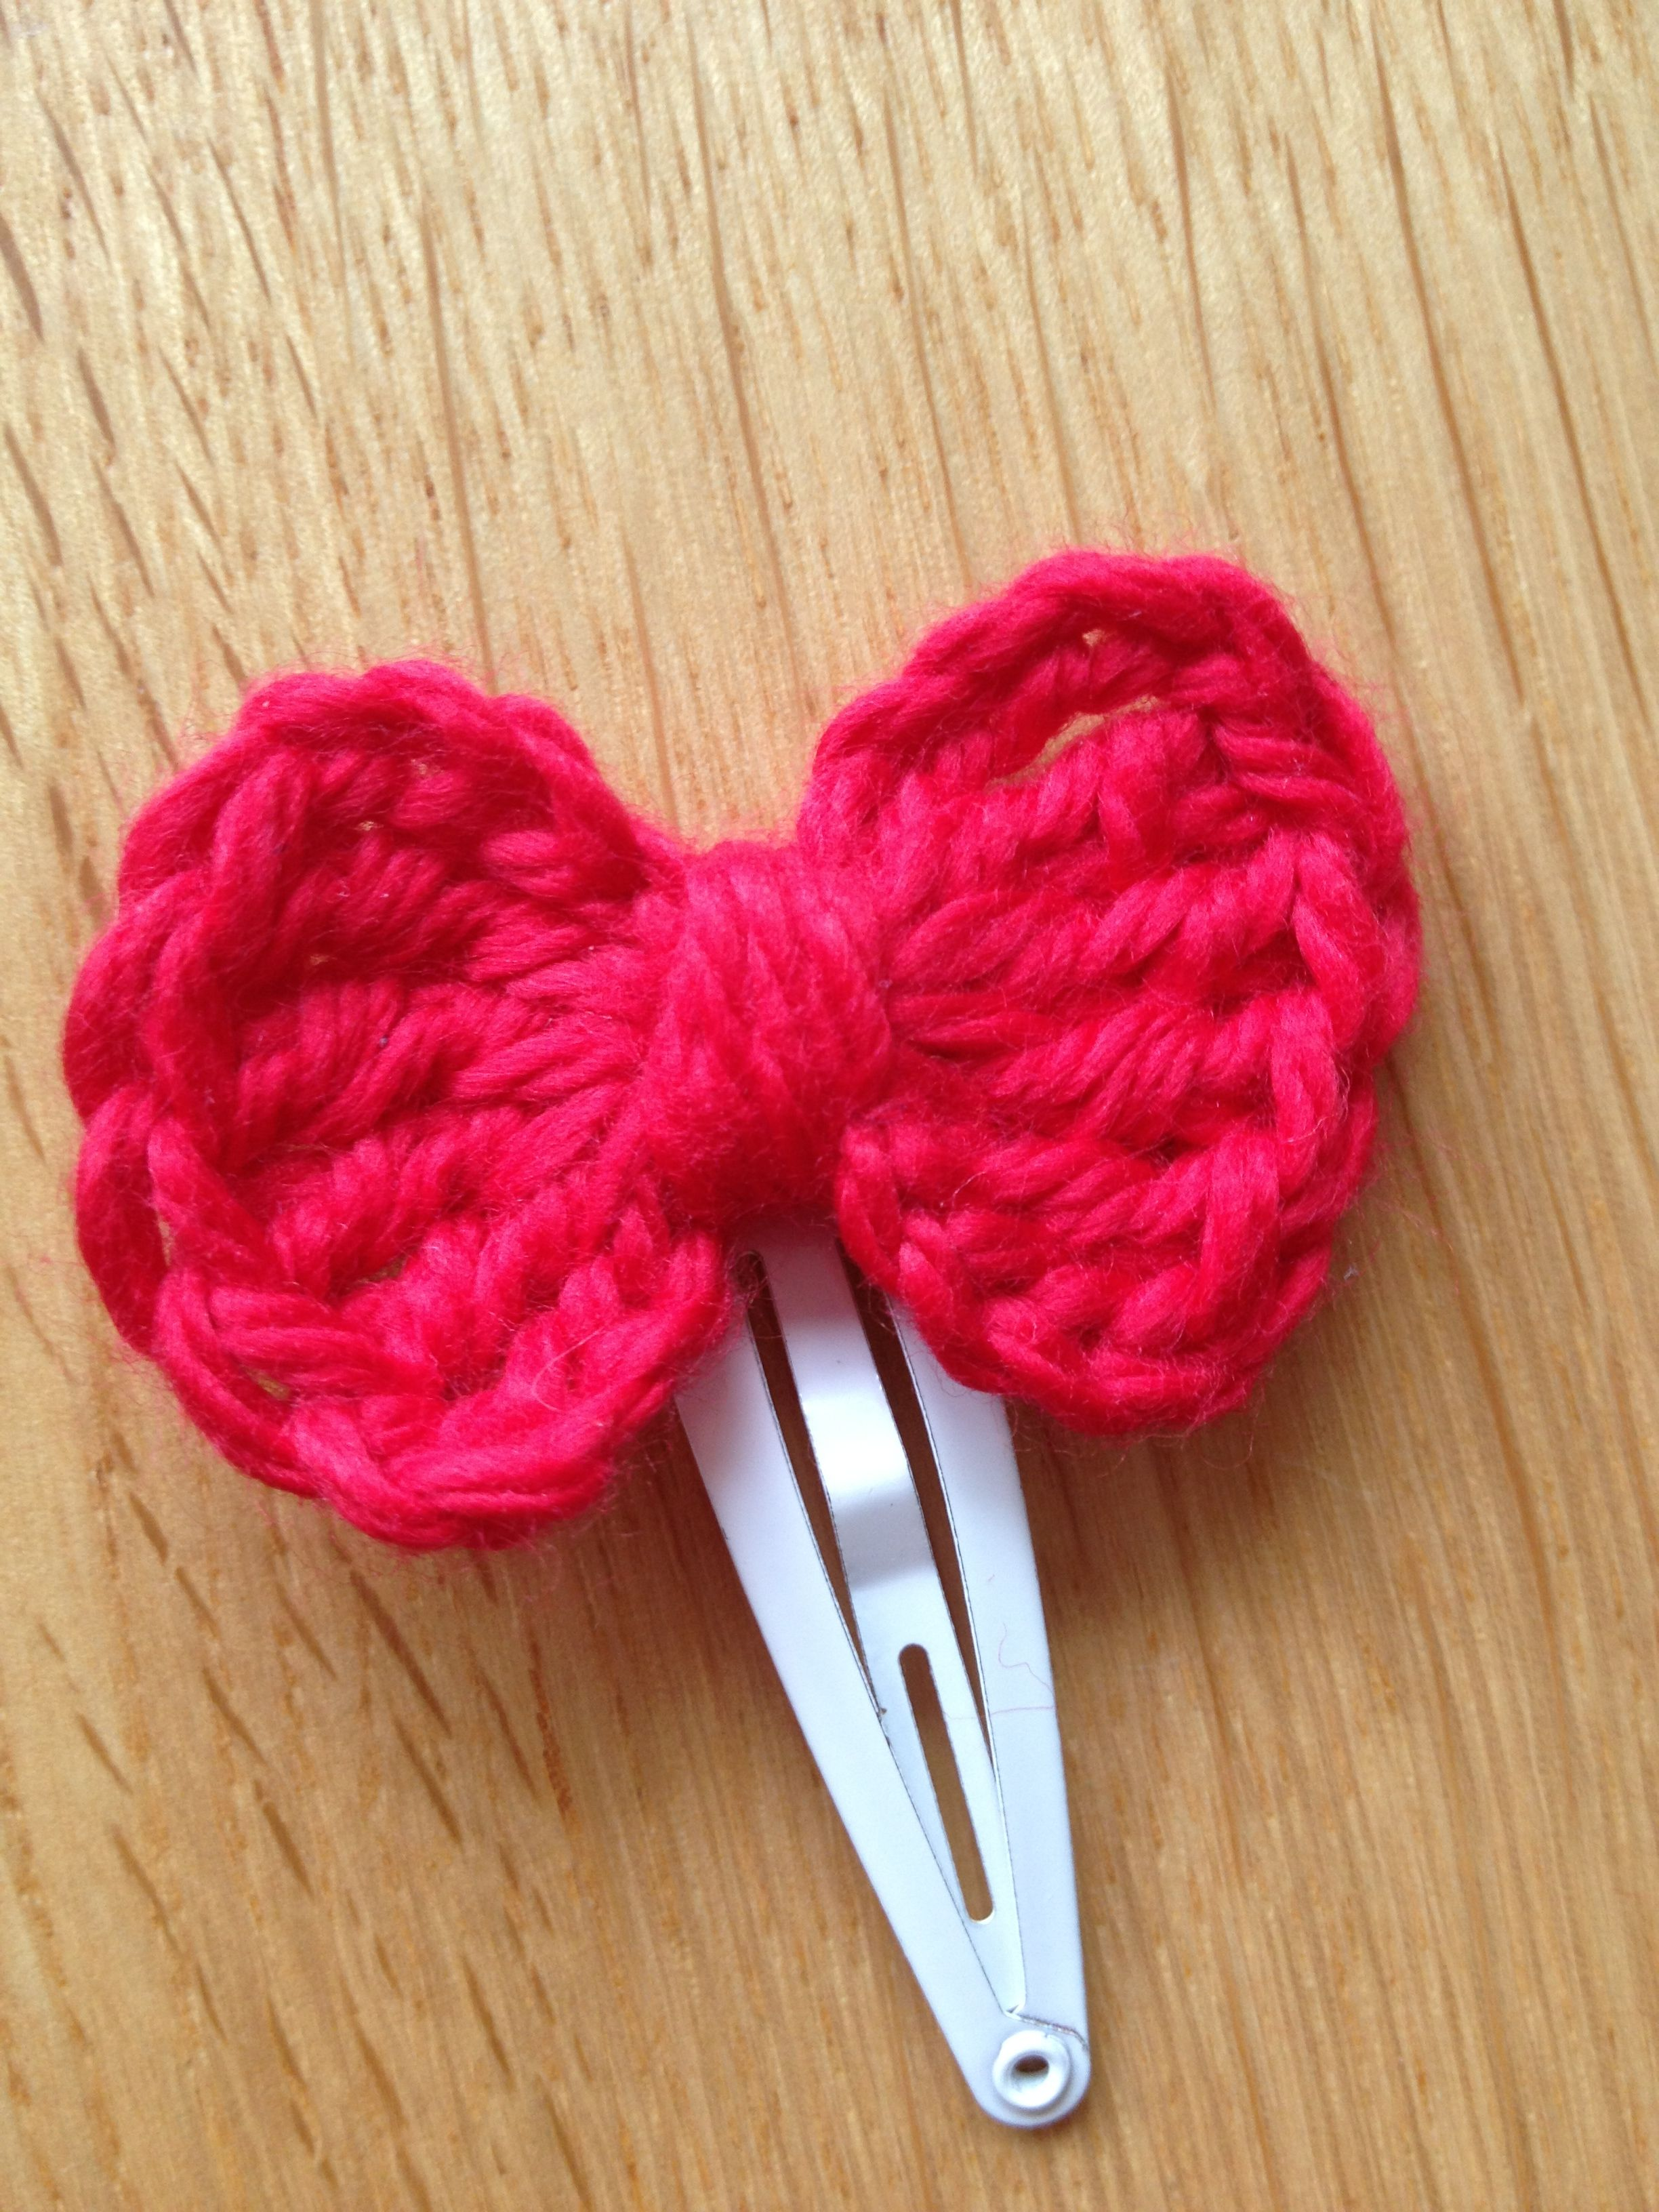 Crochet Hair Bows : Crochet hair bow Crochet ideas Pinterest